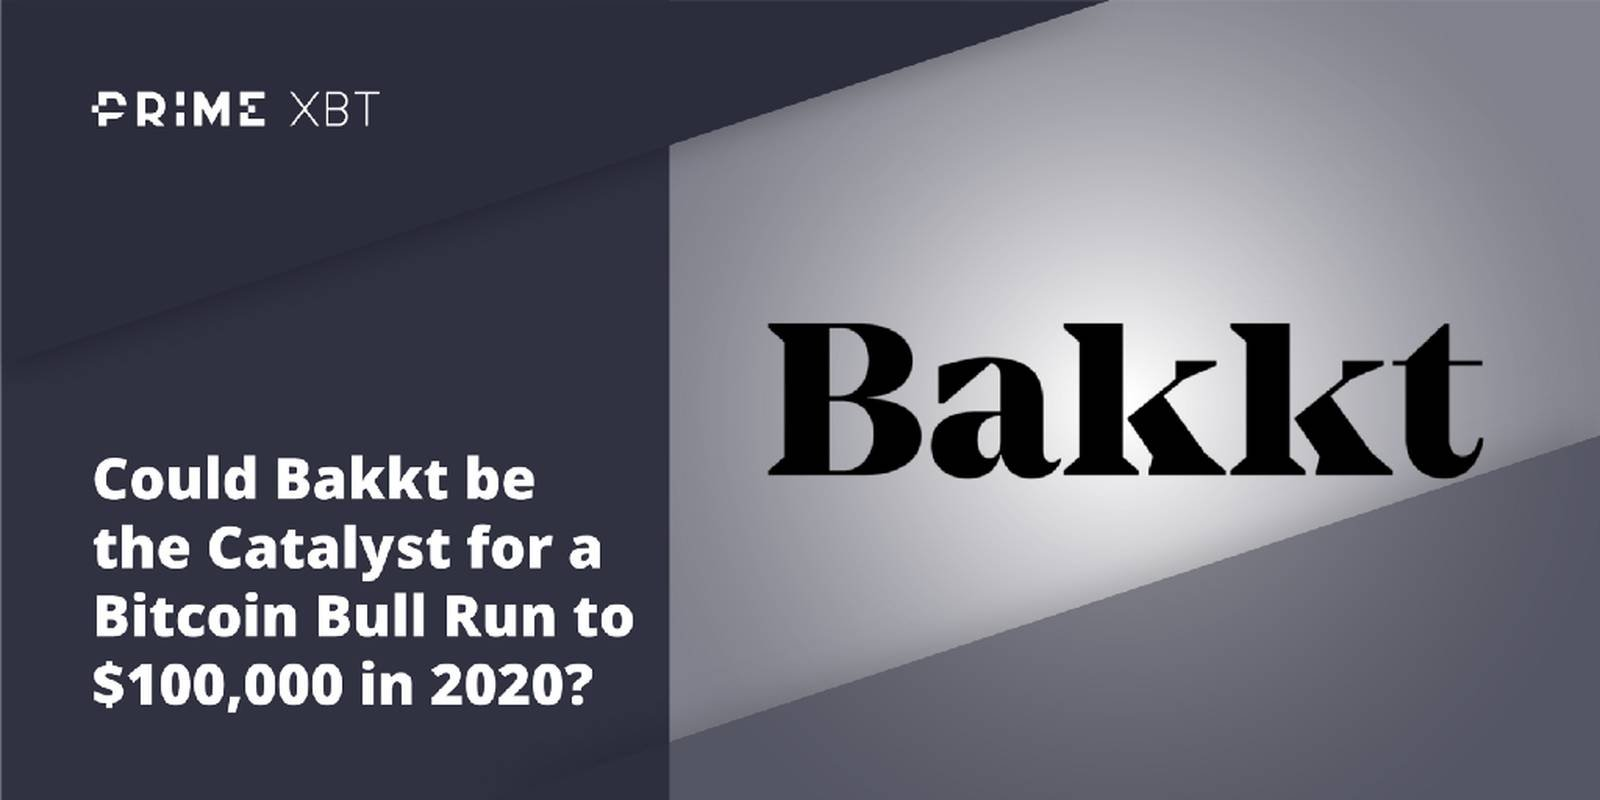 Could Bakkt be the Catalyst for a Bitcoin Bull Run to $100,000 in 2020?